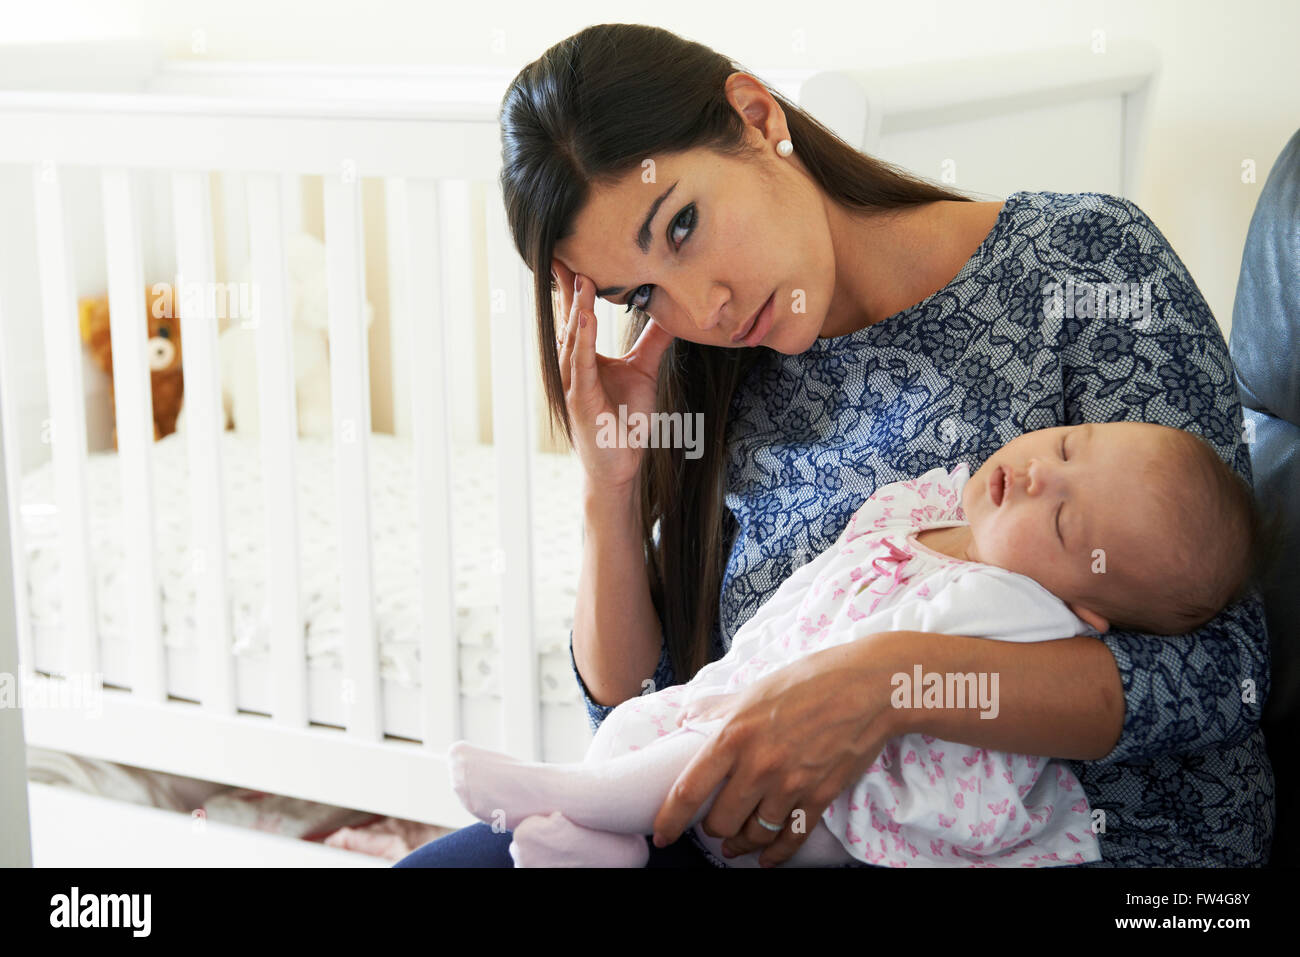 Tired Mother Suffering From Post Natal Depression - Stock Image